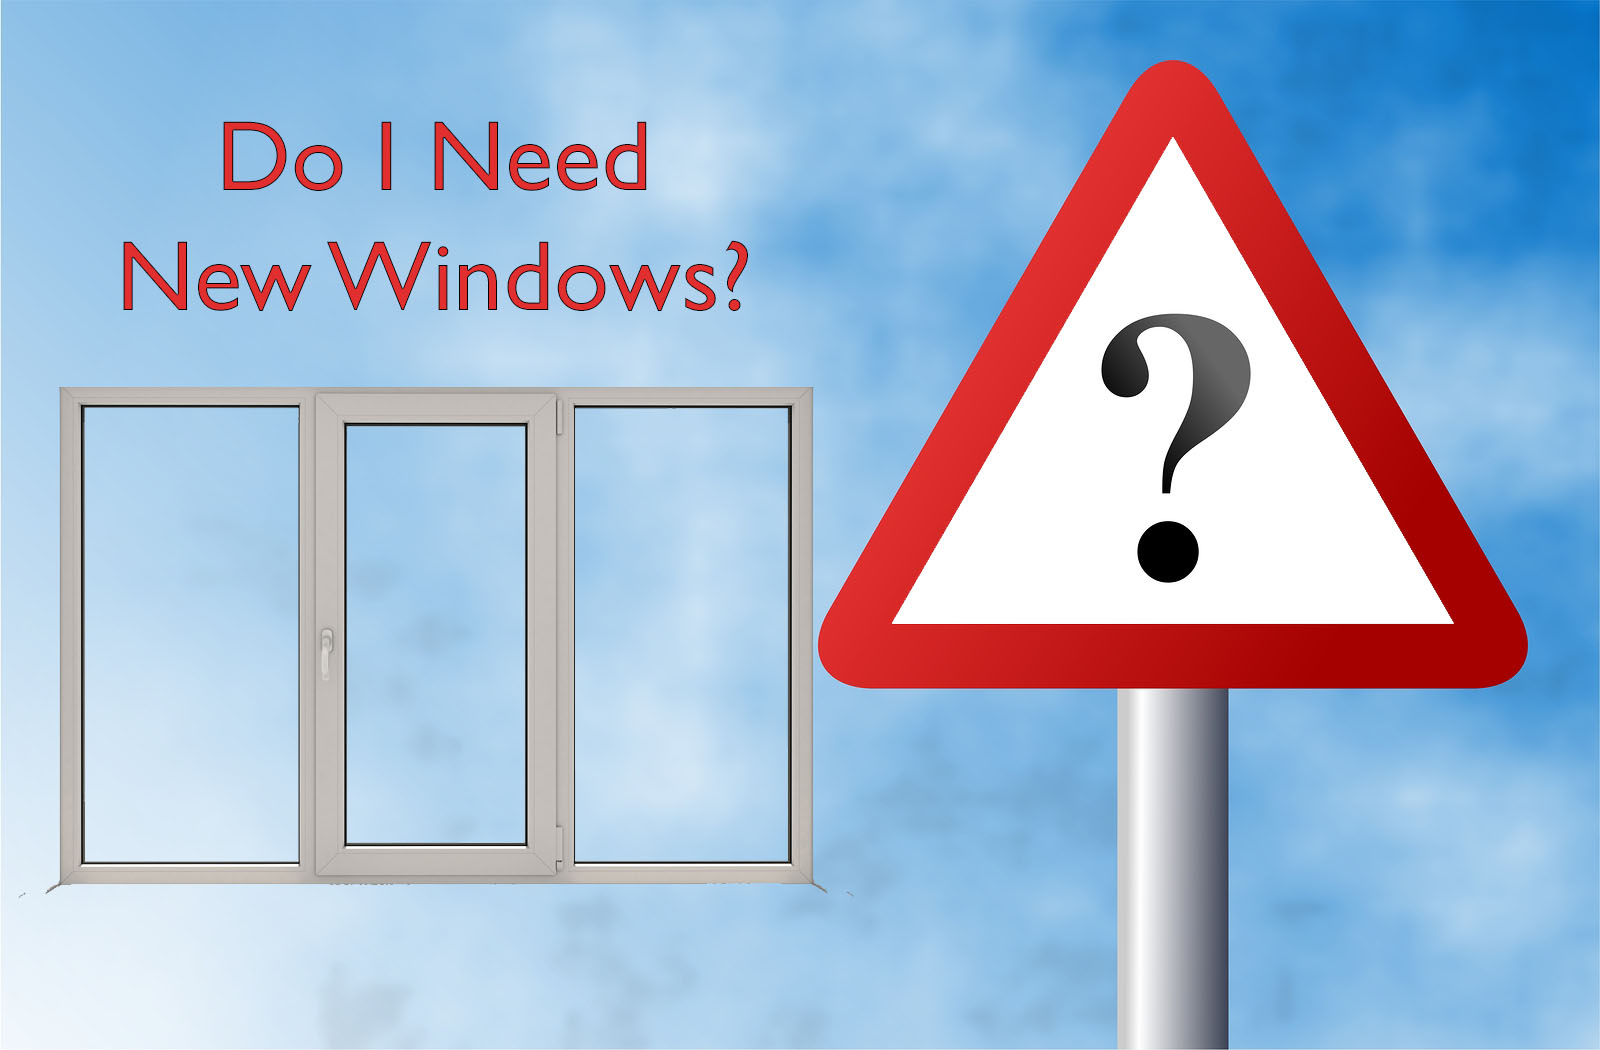 do I need new windows?